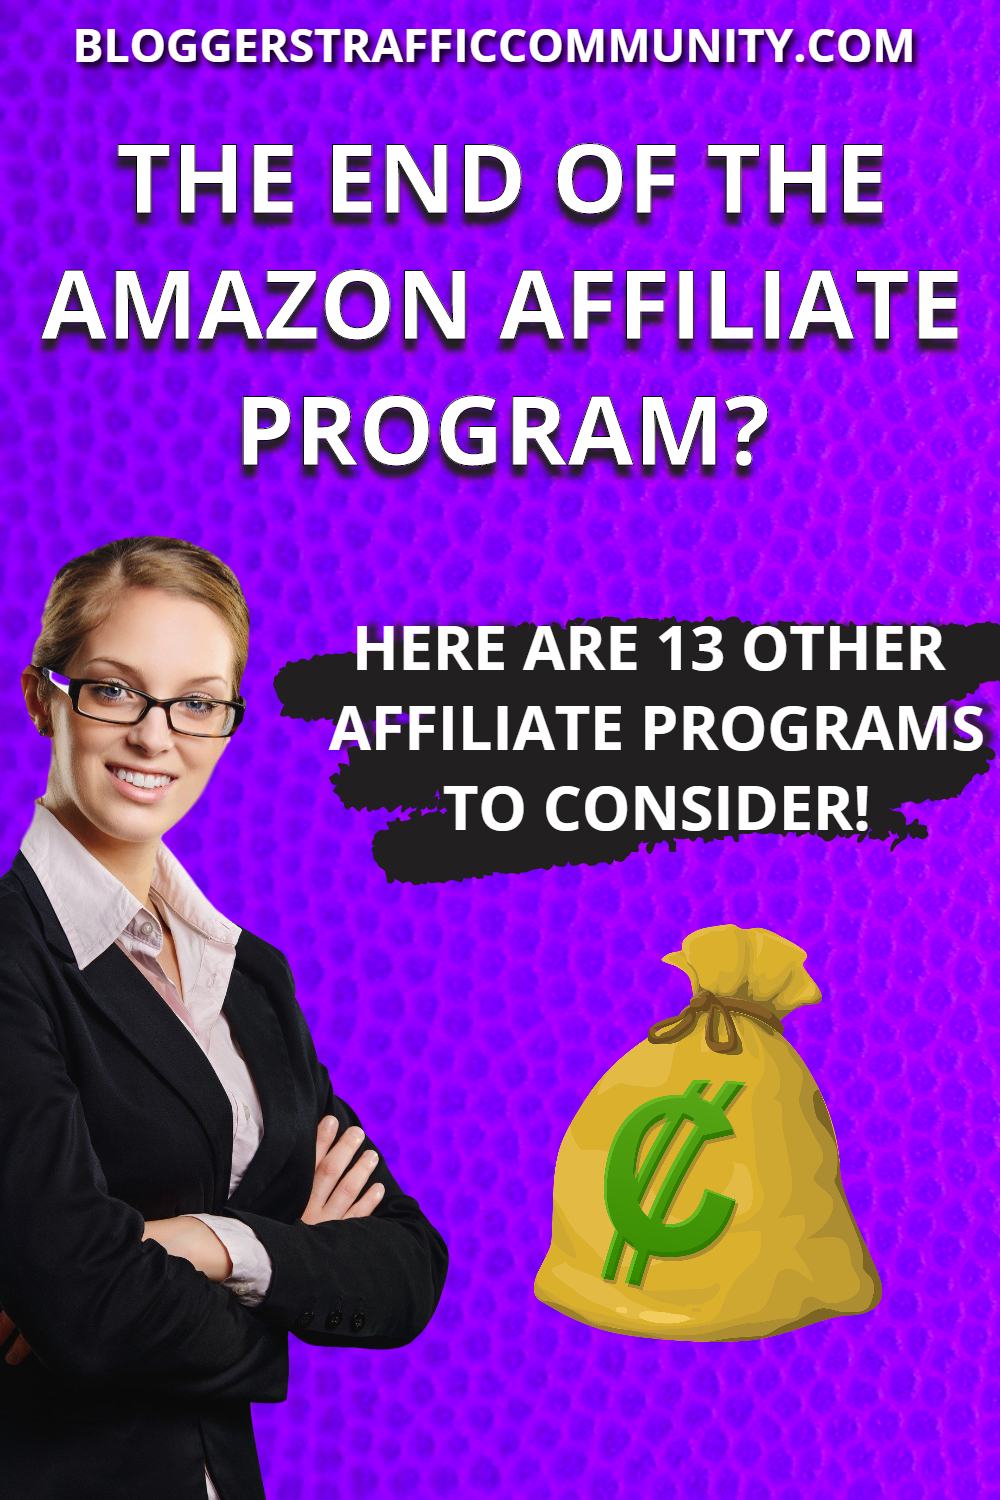 End for the Amazon Affiliate program?